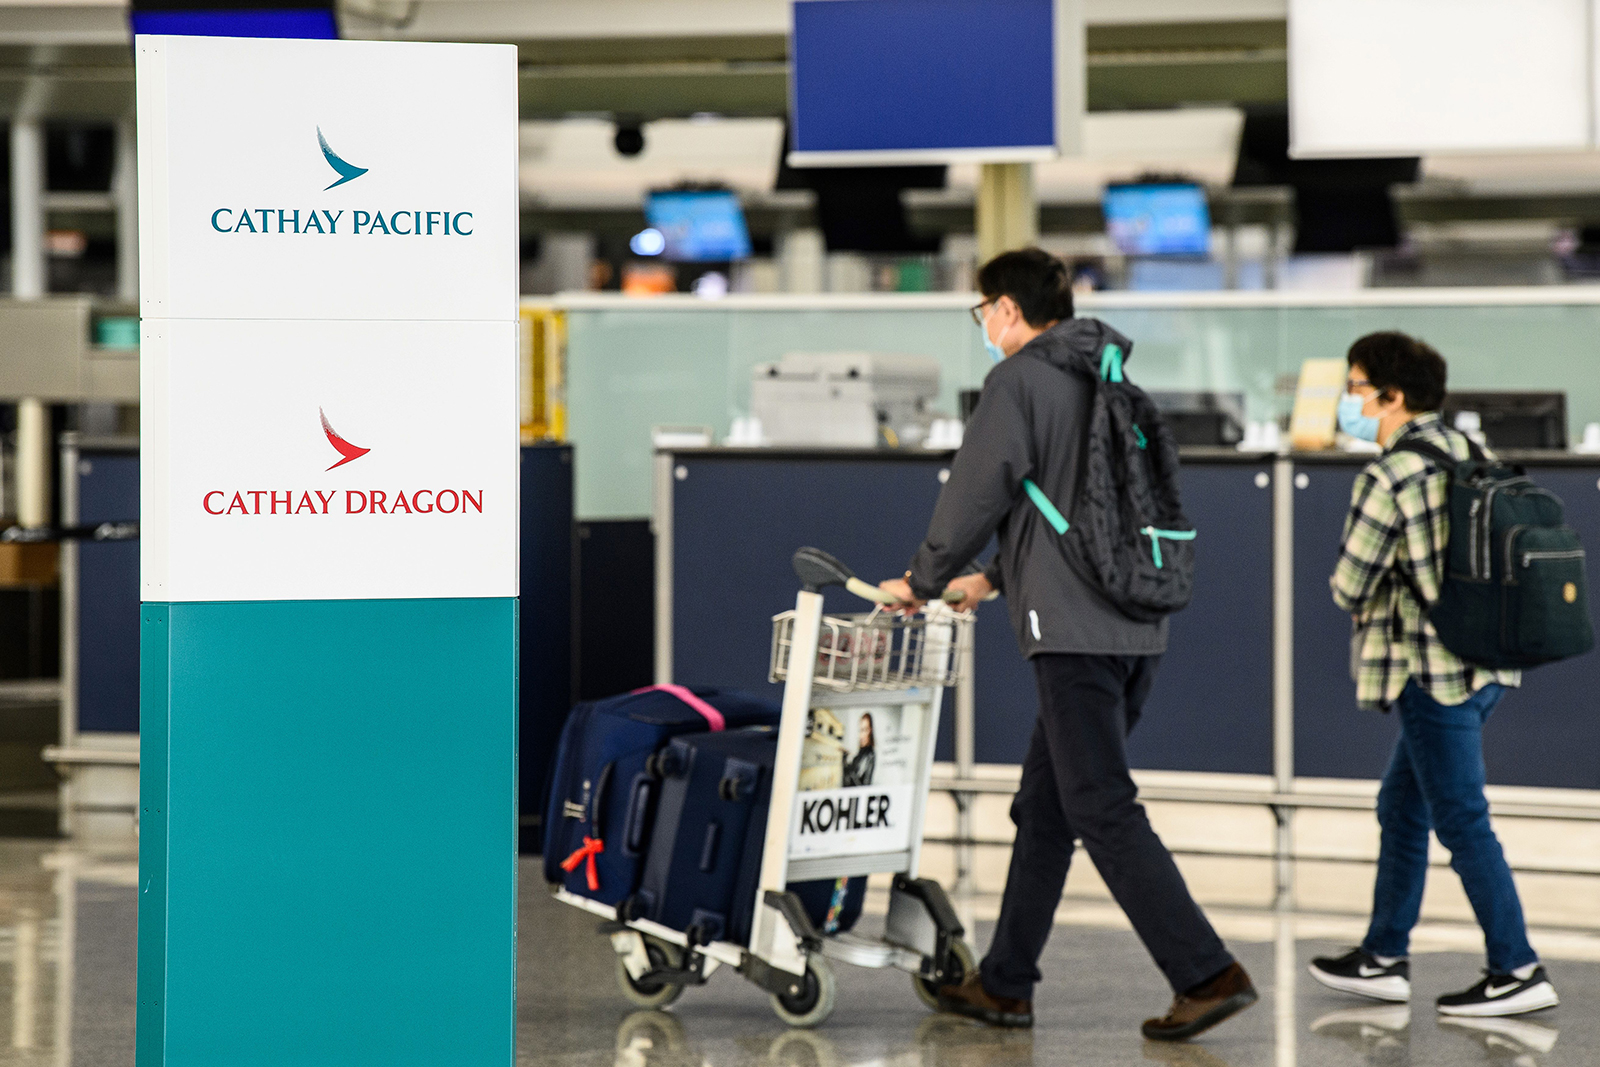 Passengers walk past signage for Cathay Pacific and Cathay Dragon near the city's flagship carrier check-in counters at Hong Kong International Airport, on October 20.